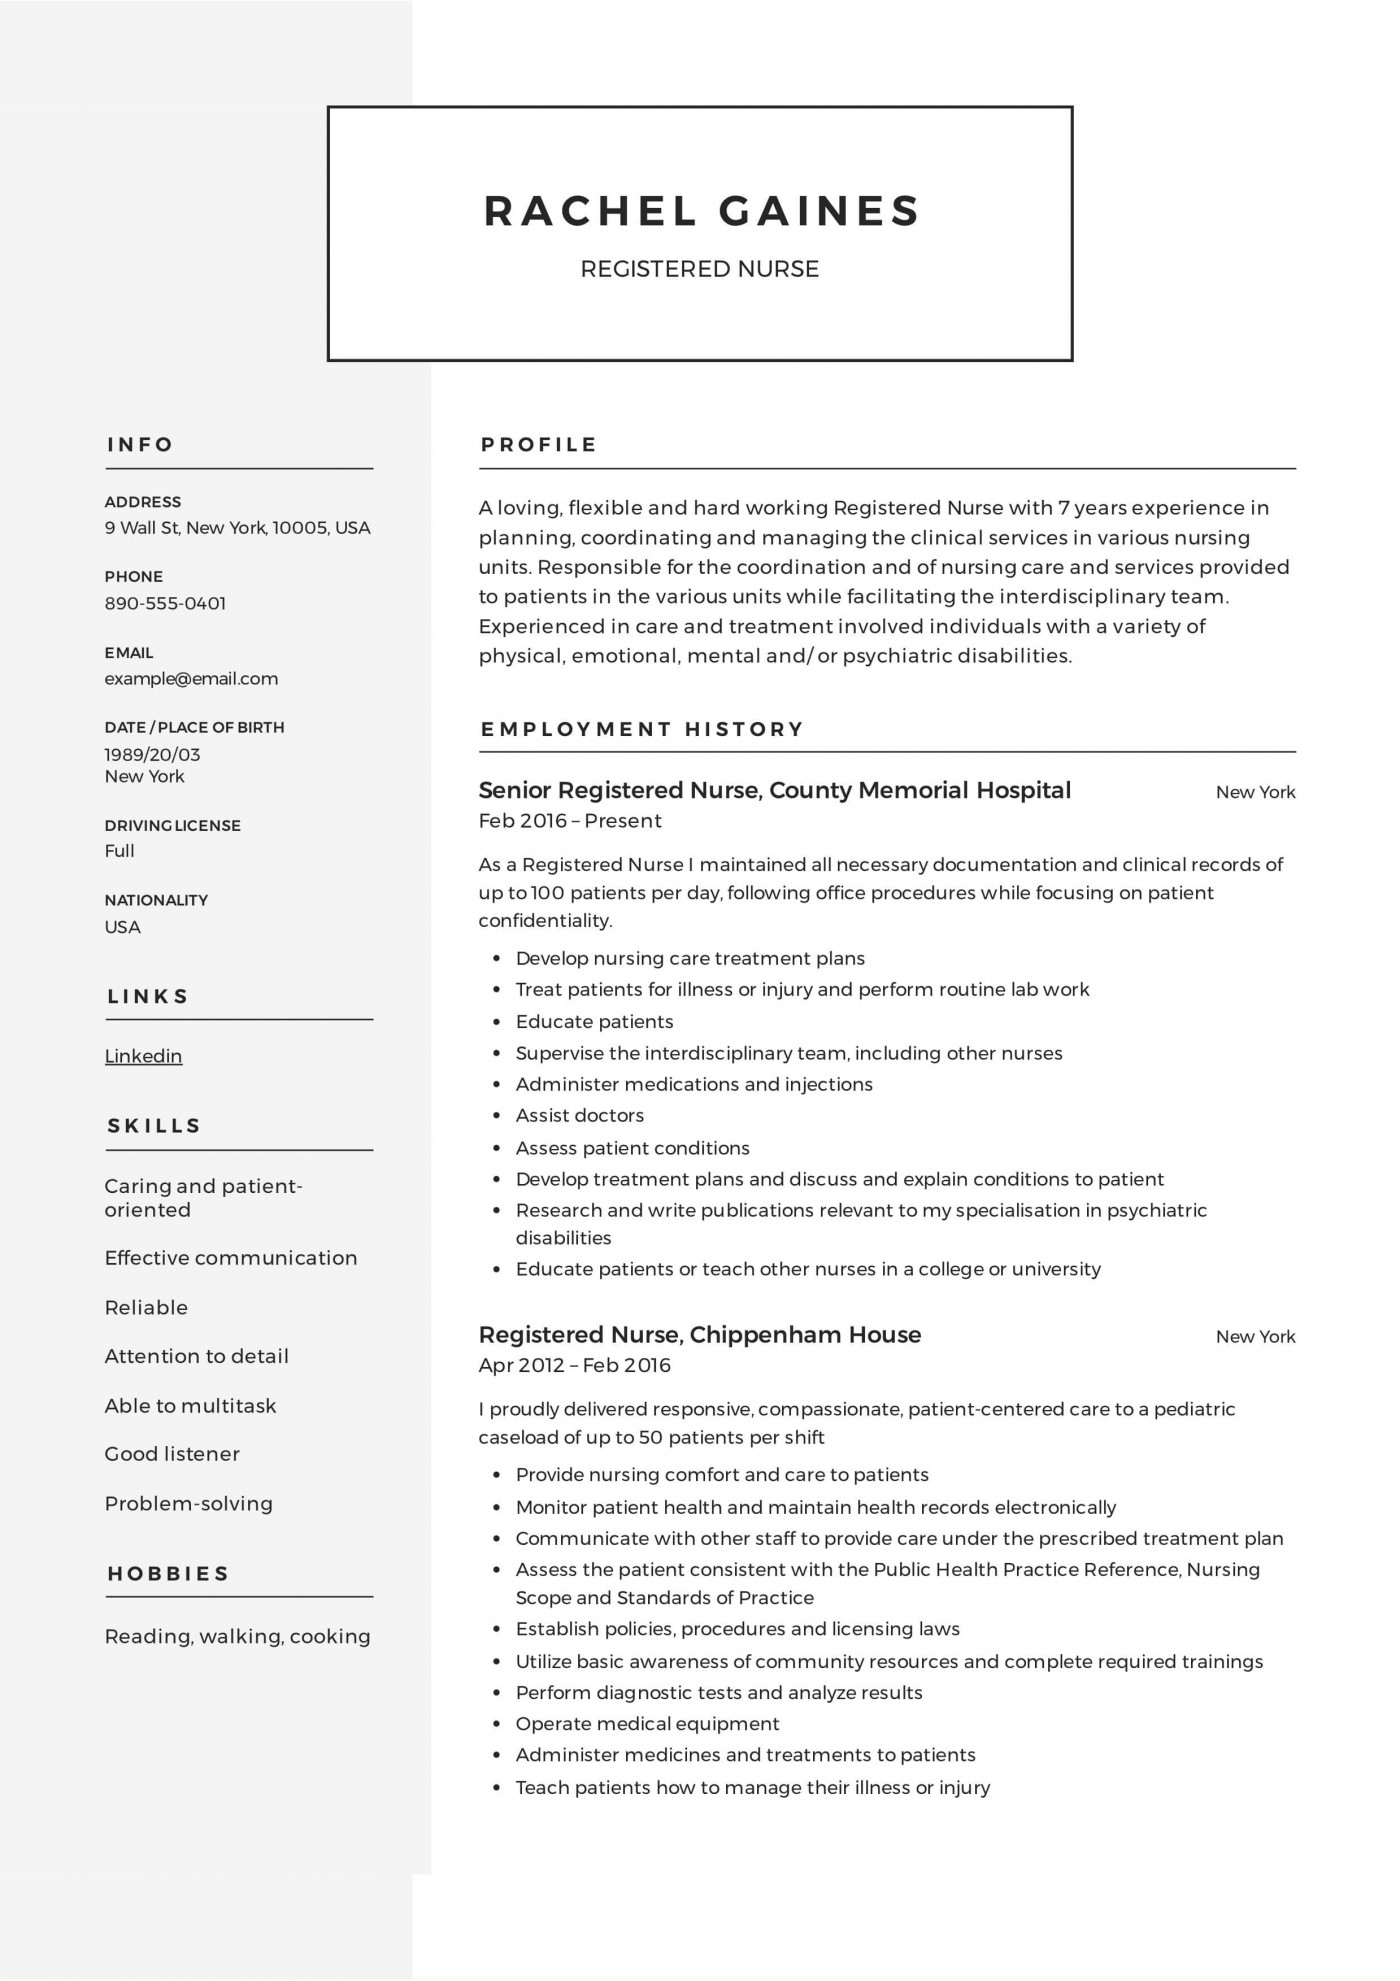 007 Breathtaking Resume Template For Nurse High Def  Sample Nursing Assistant With No Experience Rn' Free1400